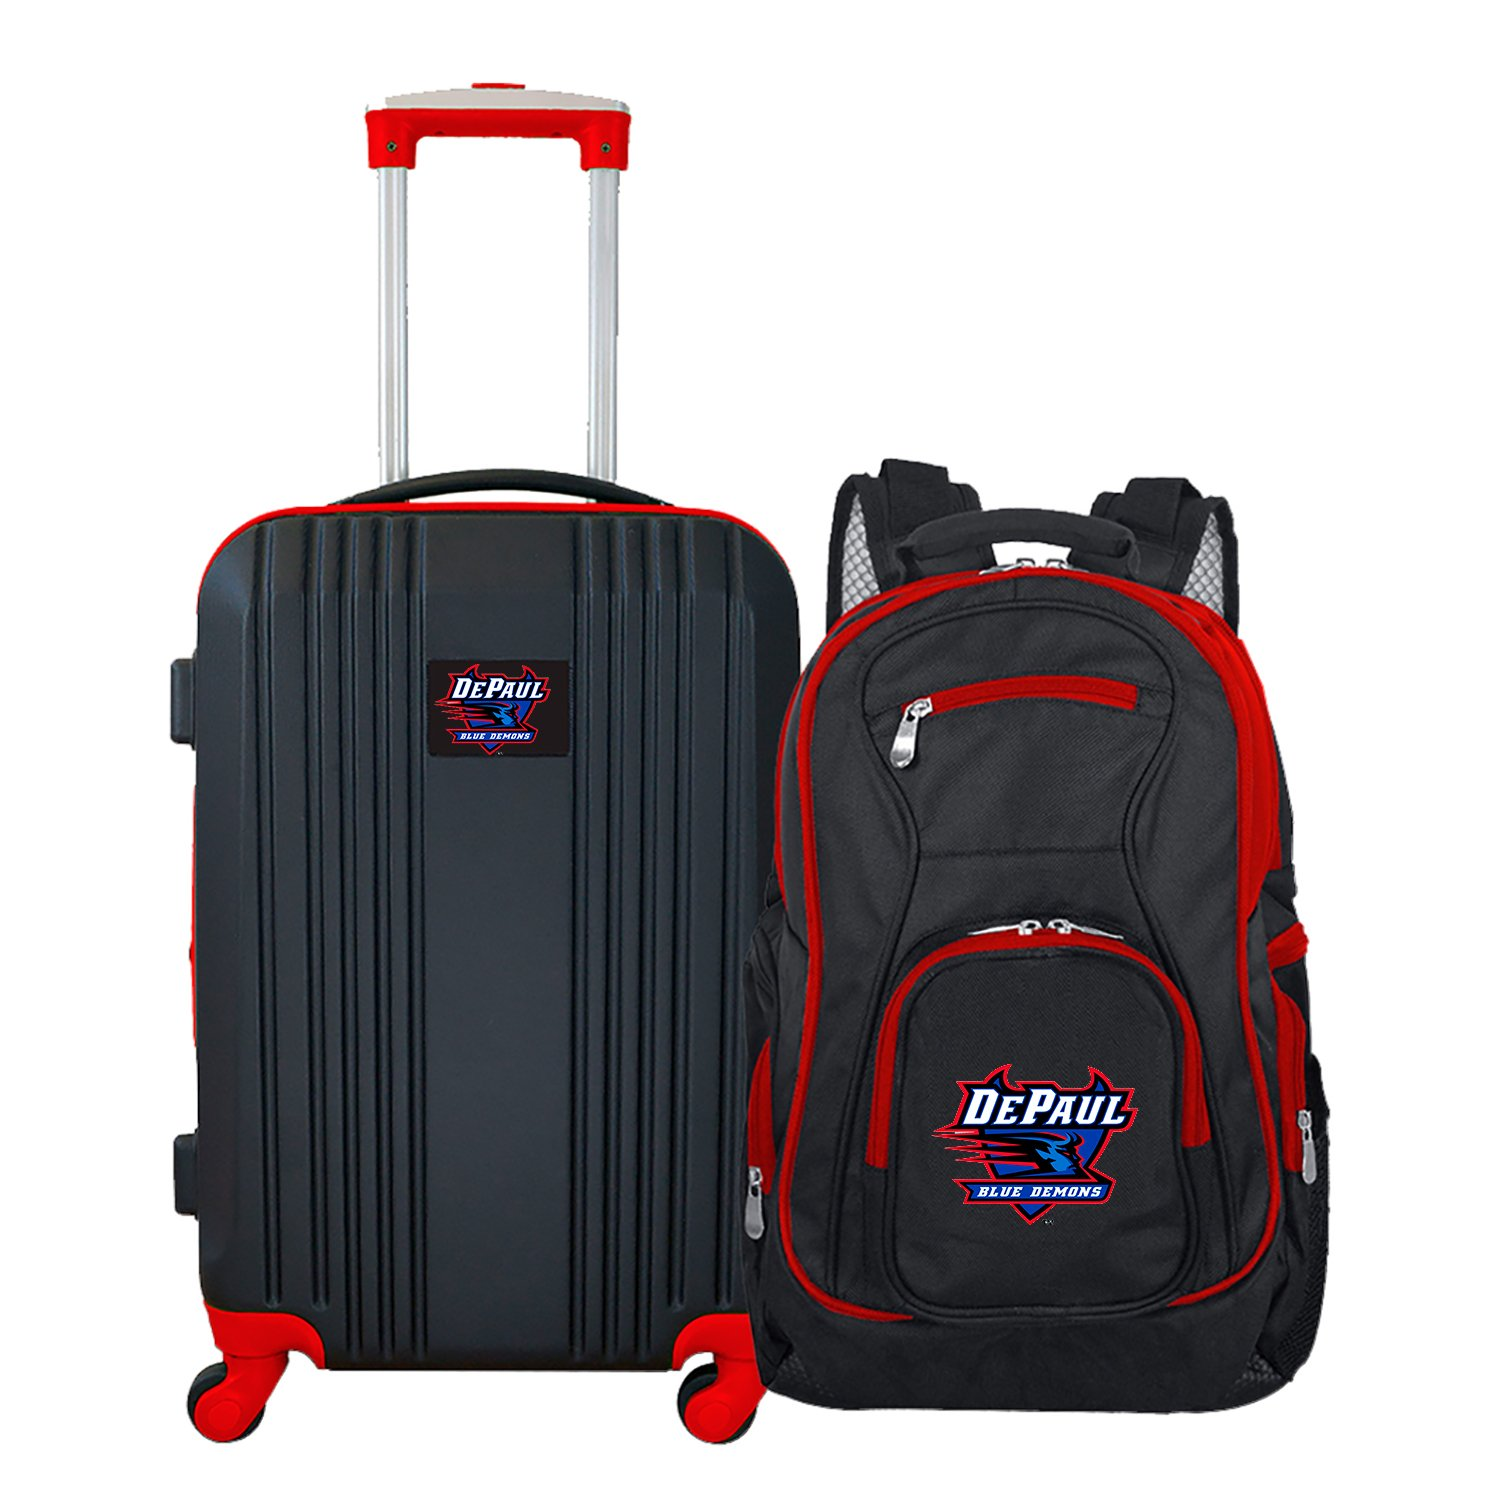 NCAA DePaul Blue Demons 2-Piece Luggage Set